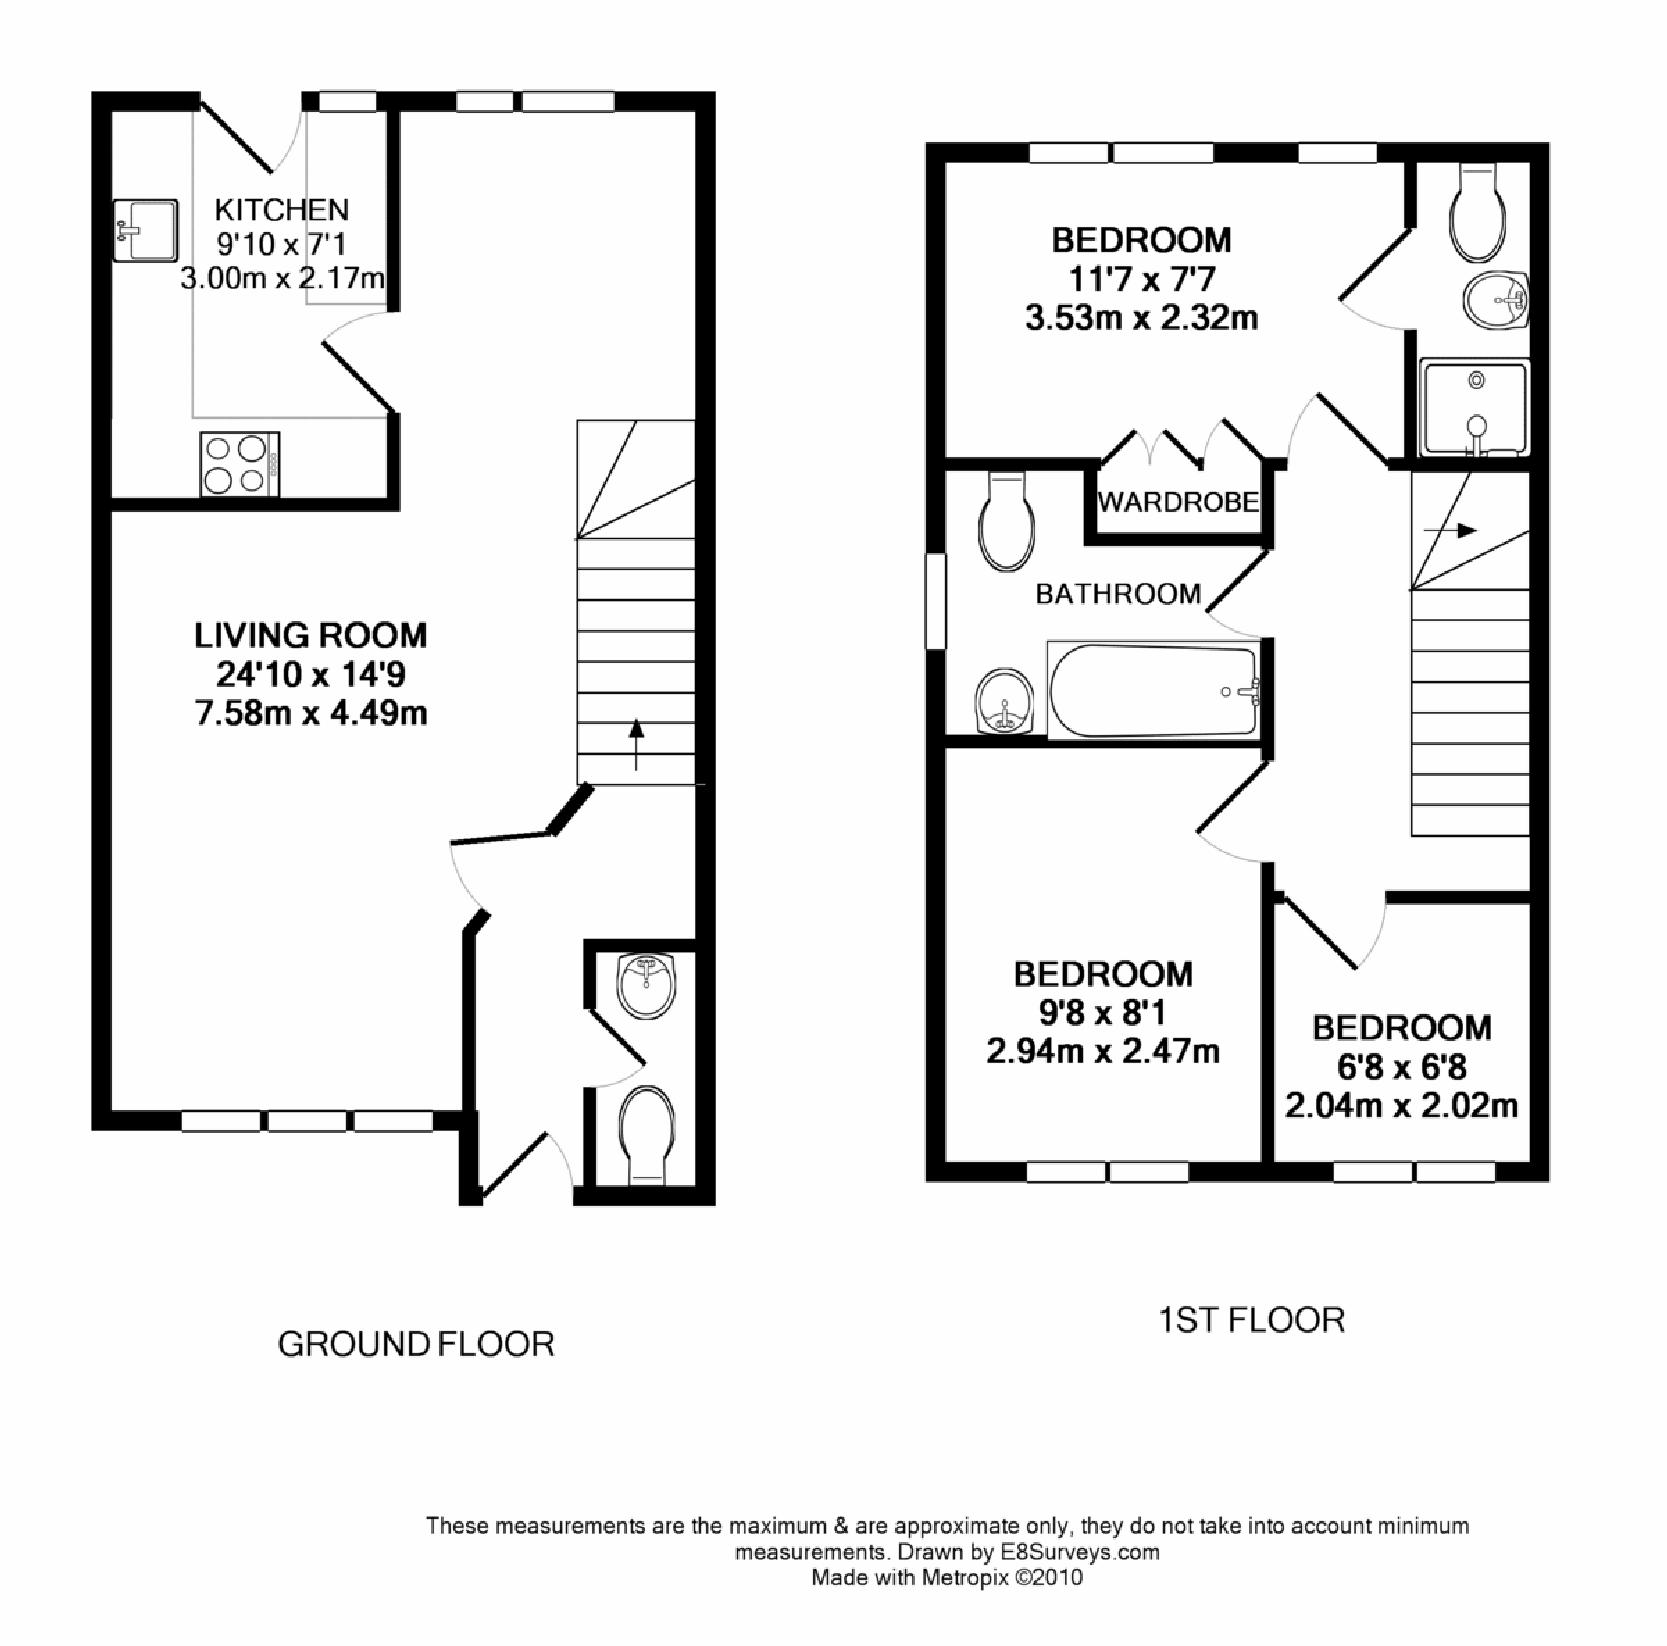 2 bedroom house plans uk house design plans for 2 bed house floor plans uk